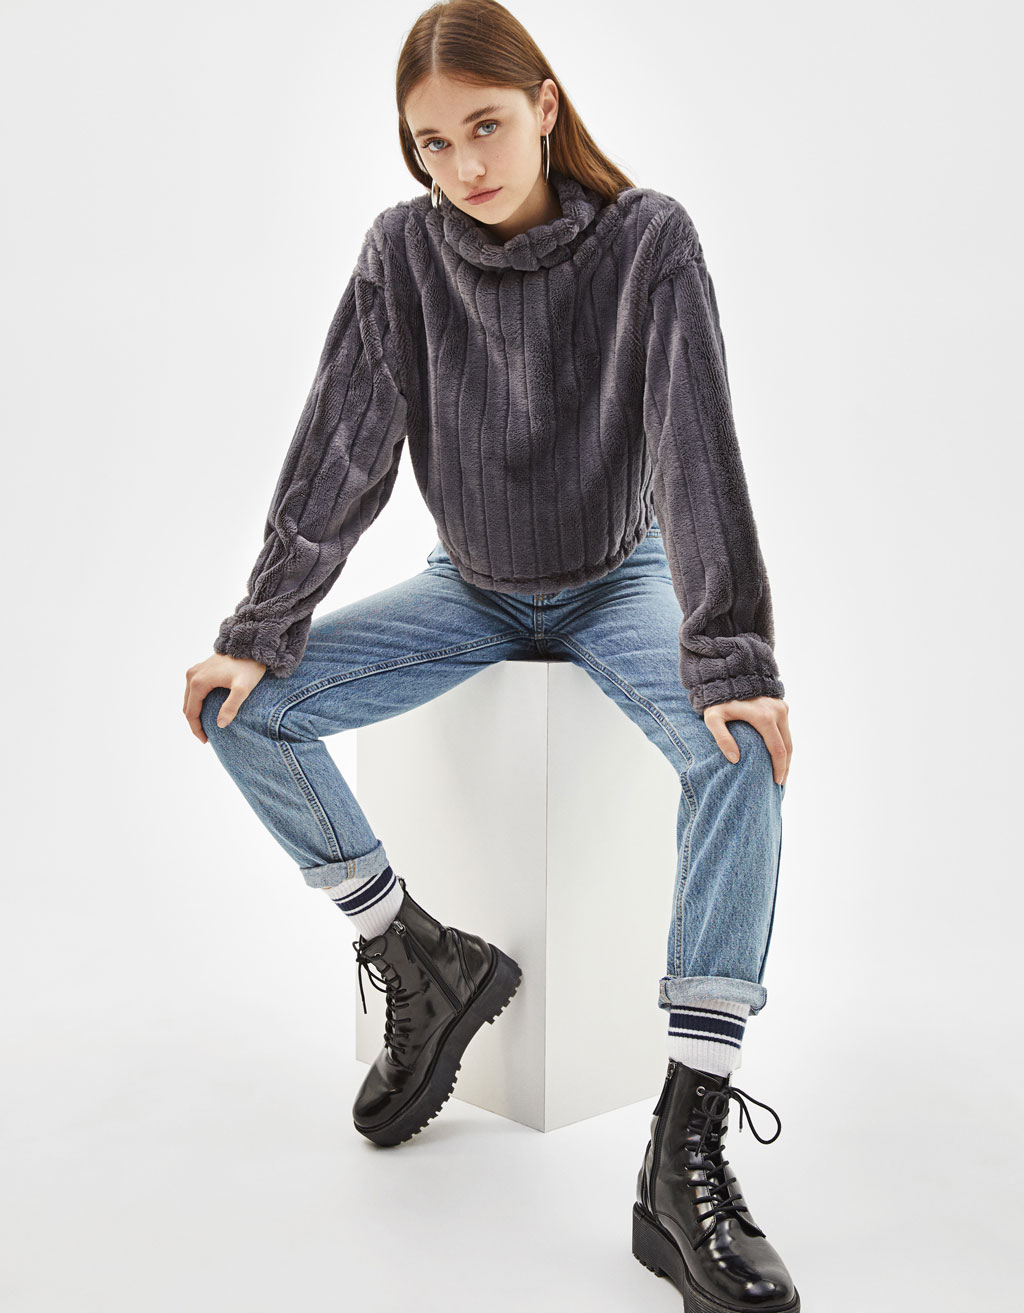 Fuzzy roll neck sweater